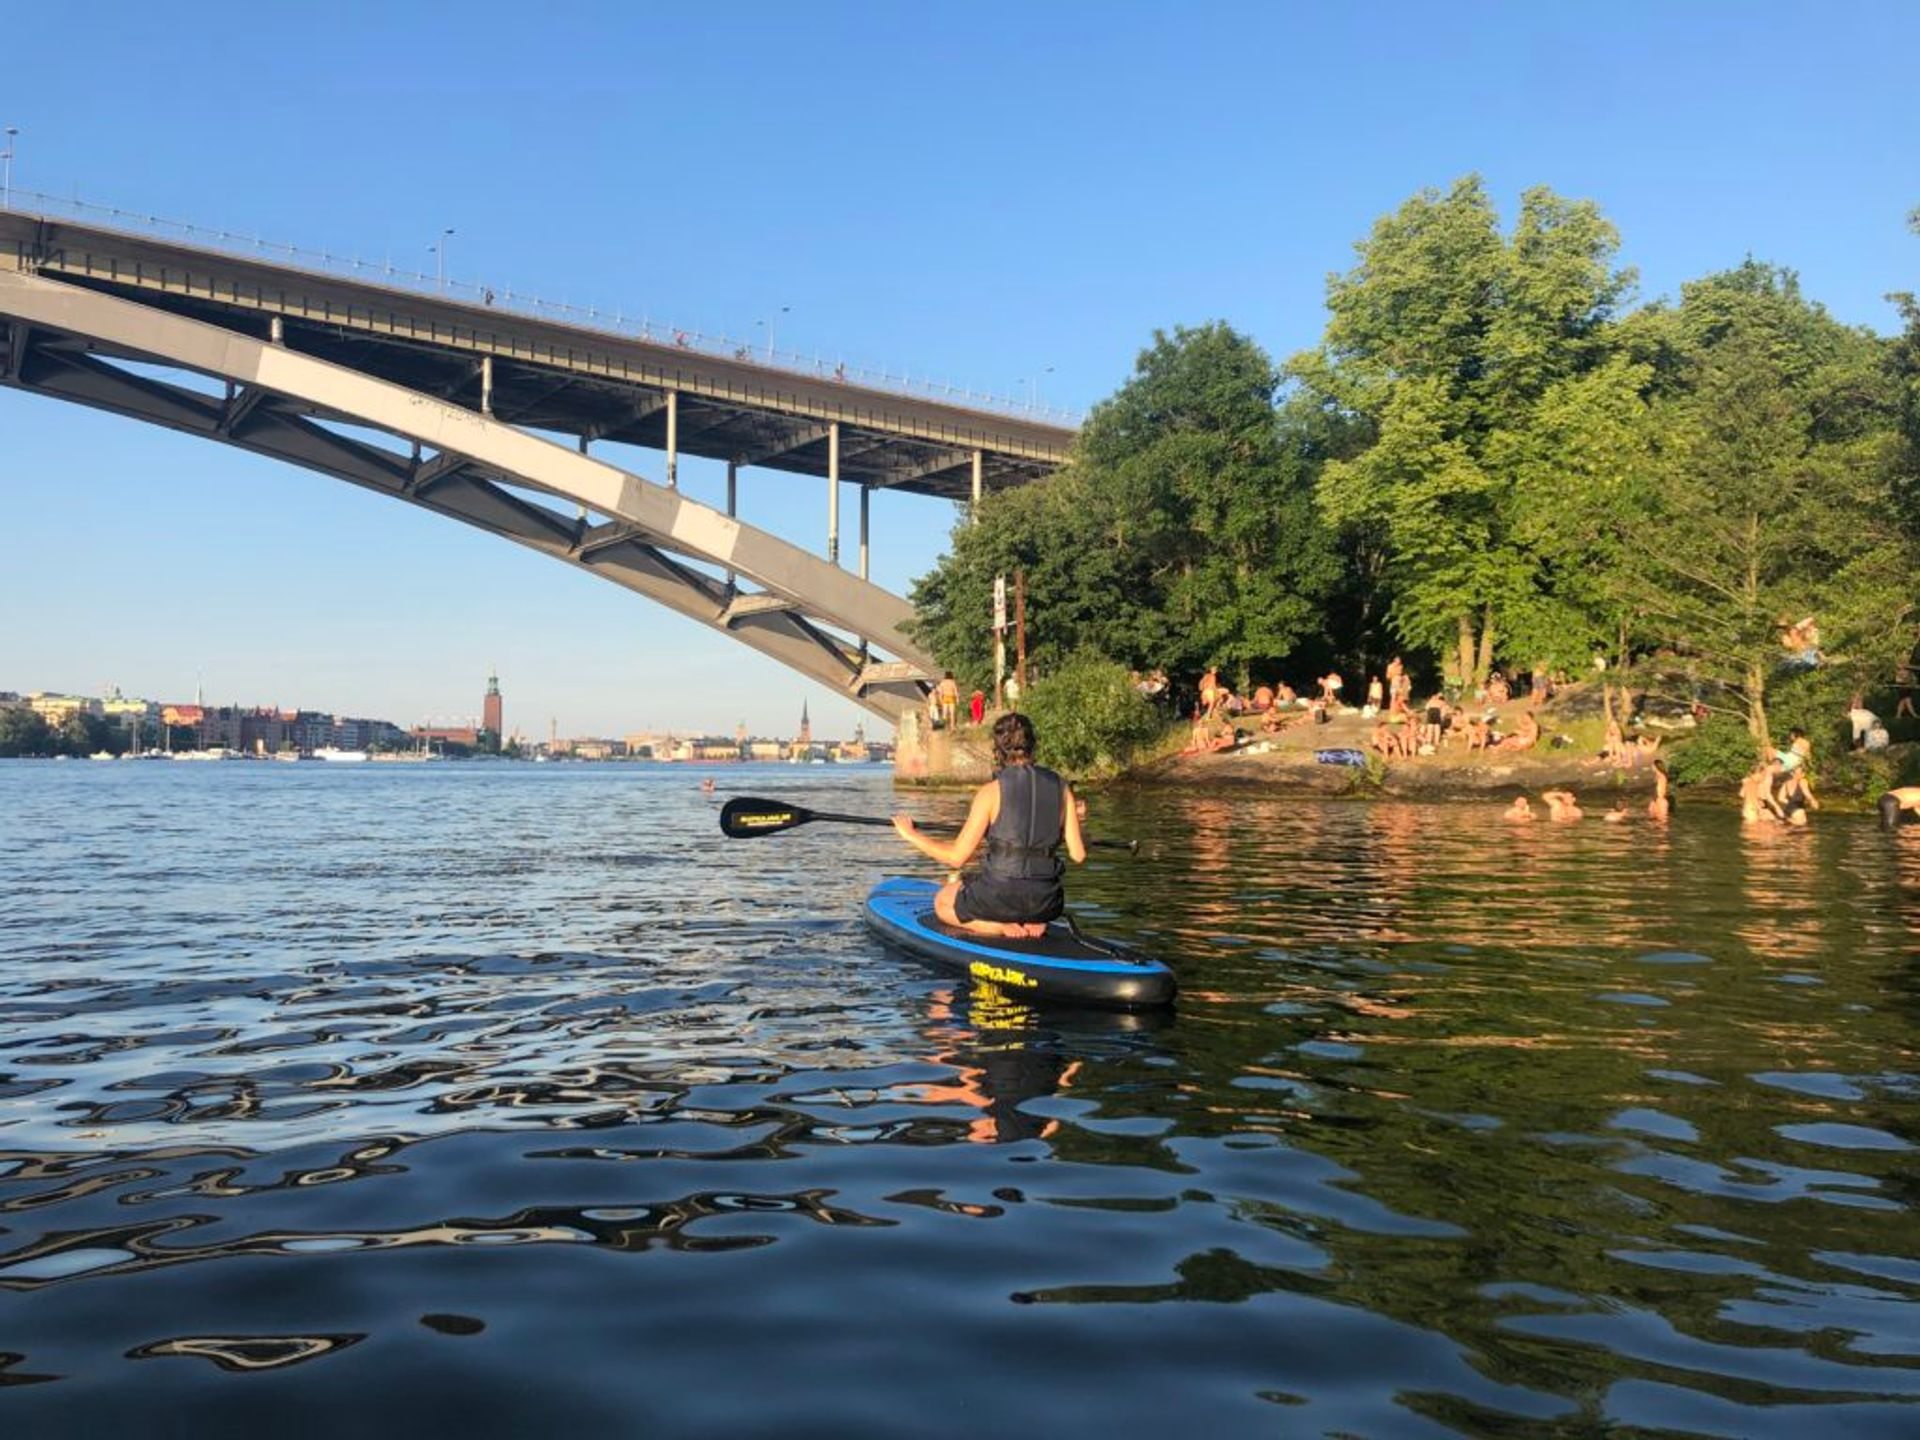 A person paddleboarding in the sea close to Stockholm city centre.